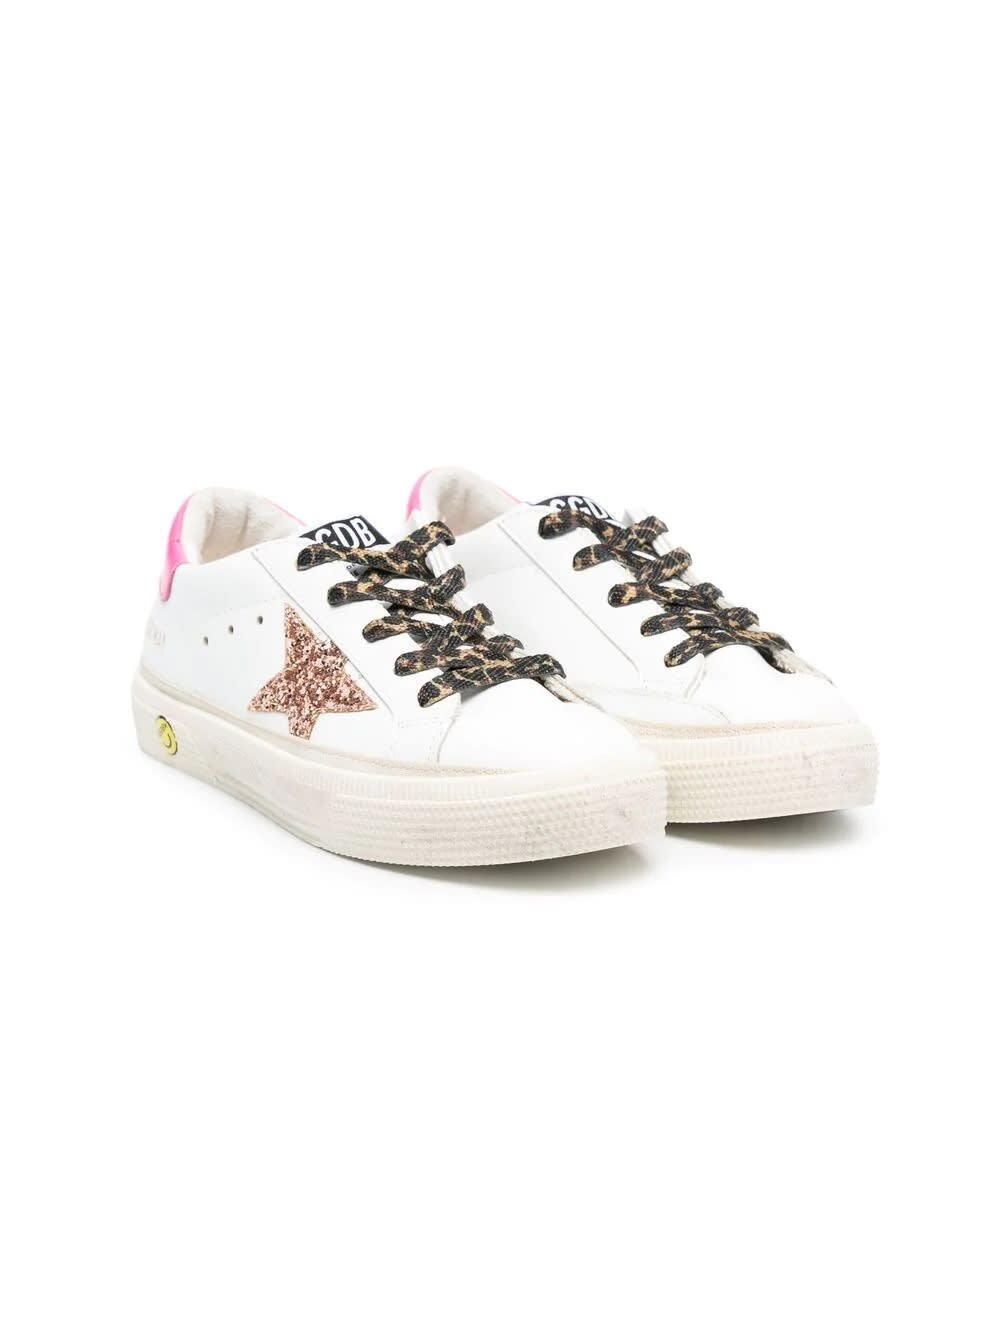 Buy Golden Goose Sneakers With Spotted Laces online, shop Golden Goose shoes with free shipping